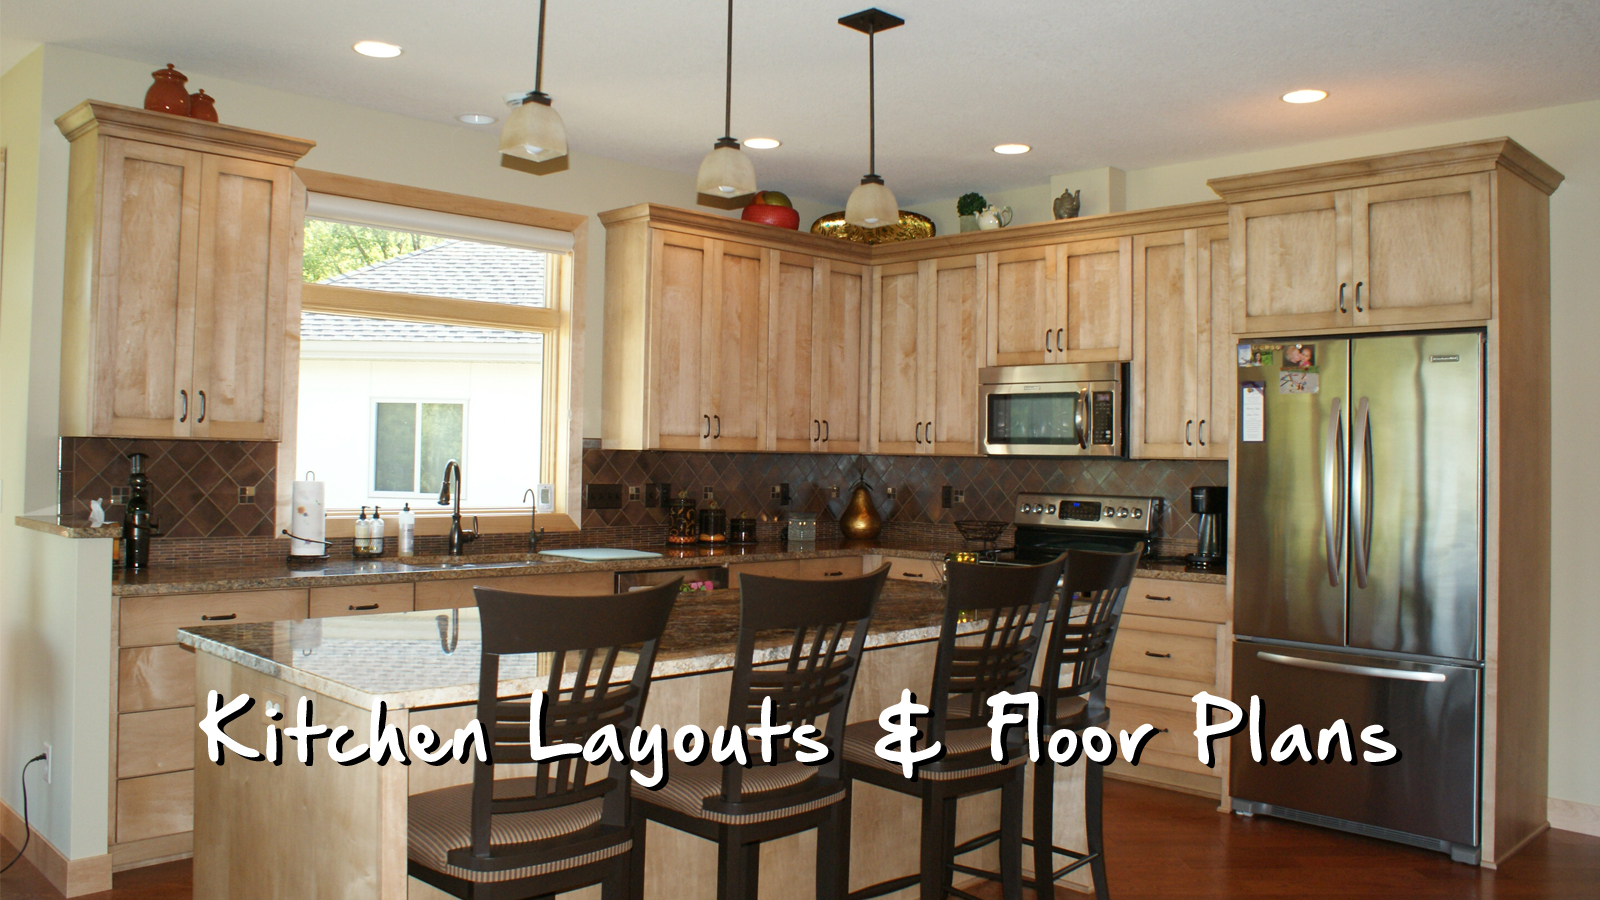 Kitchen Layouts  Floor Plans  Home Check Plus